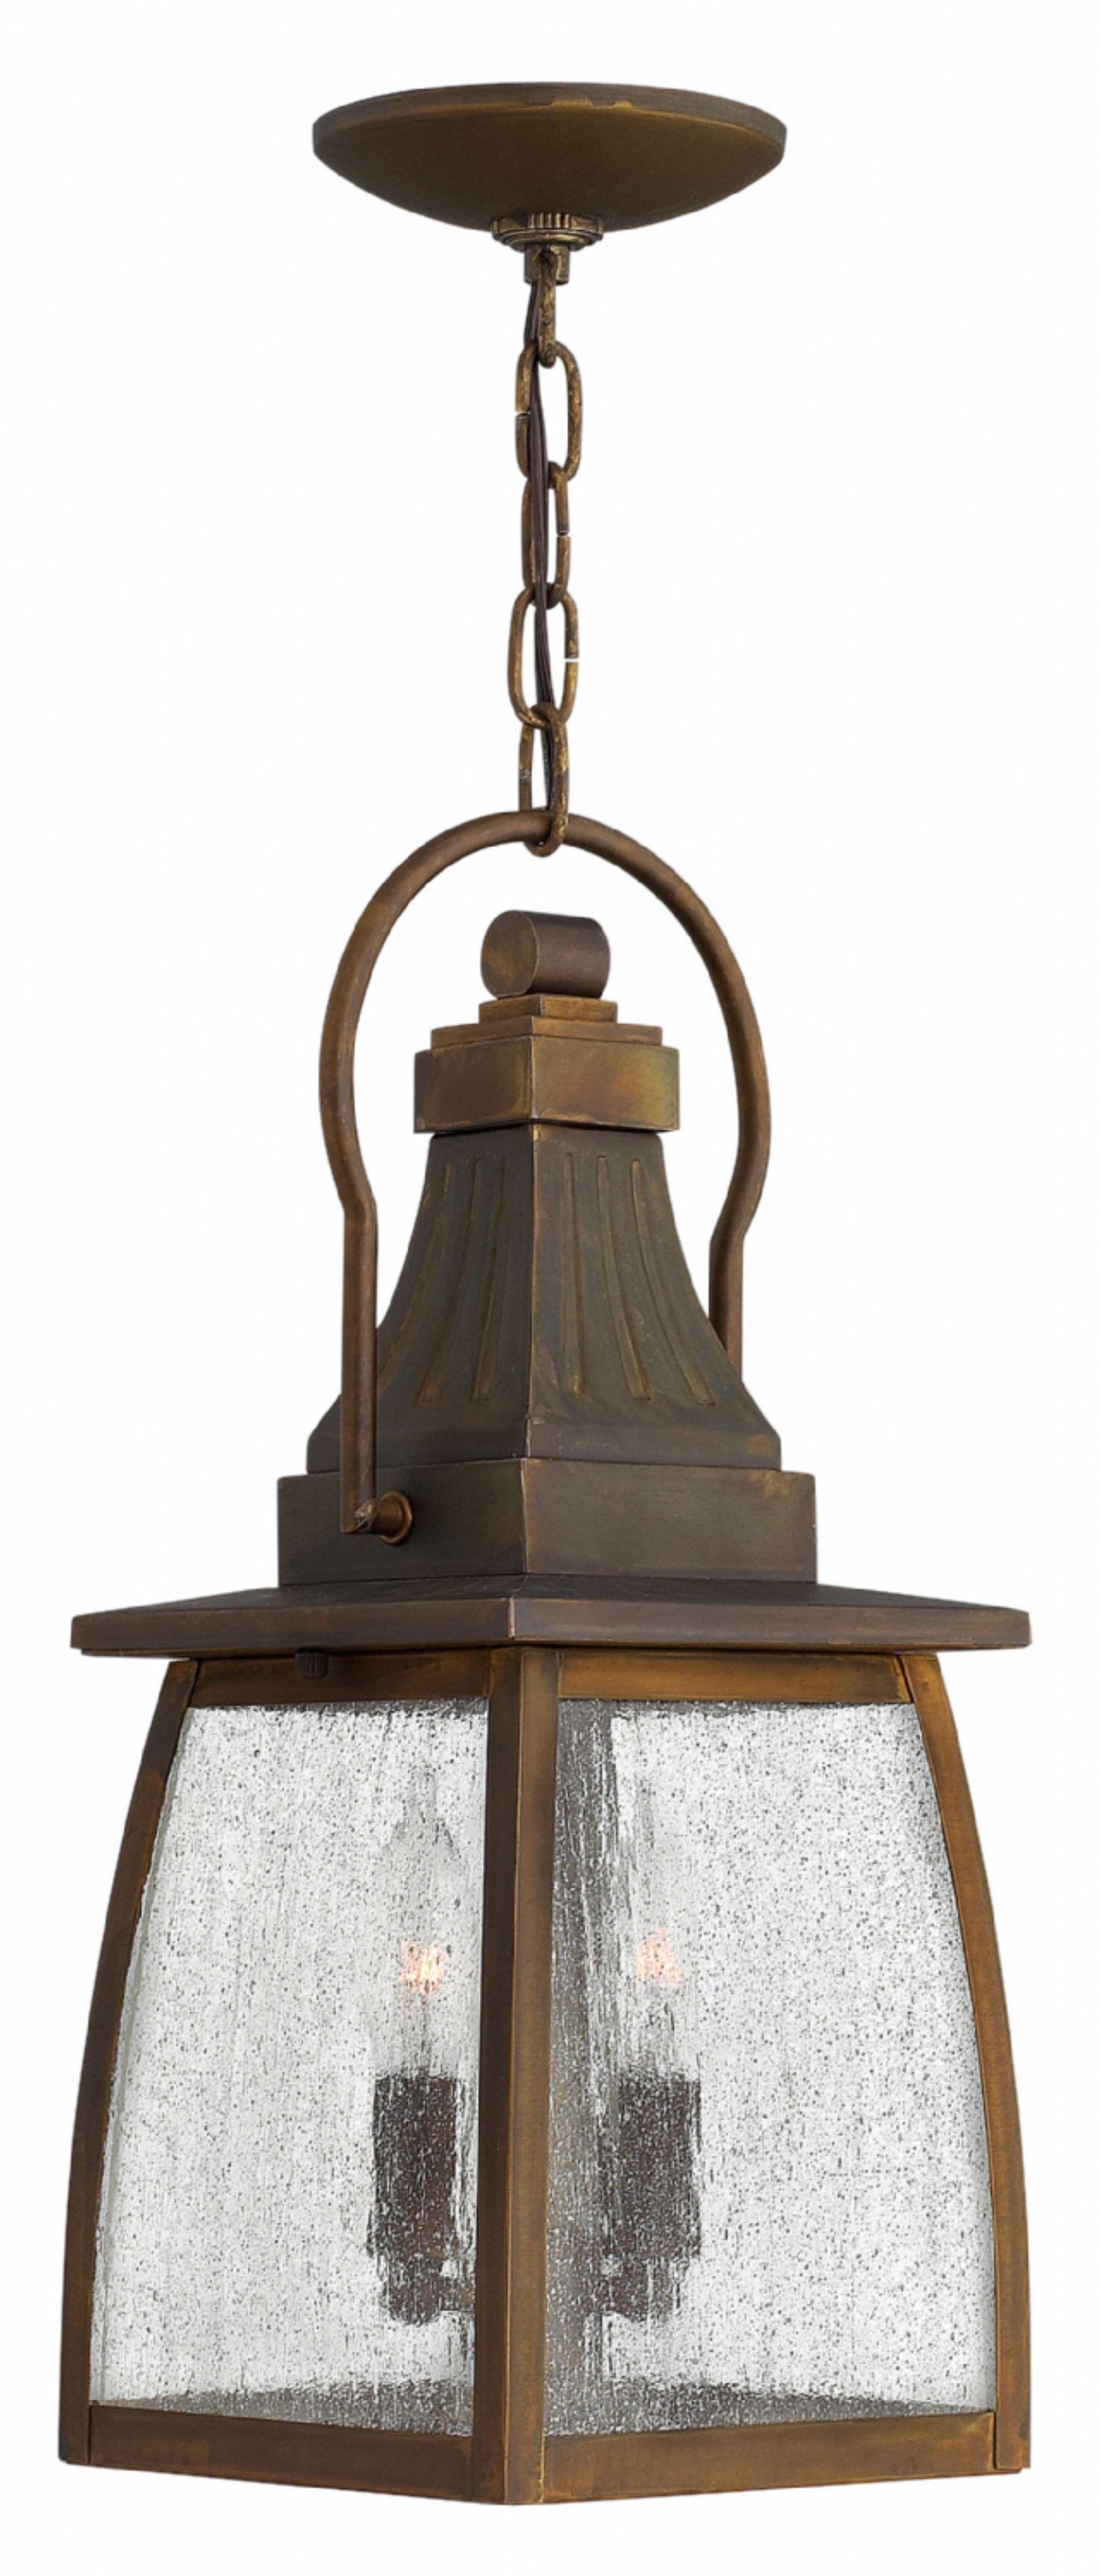 Best And Newest Sienna Montauk > Exterior Ceiling Mount Intended For Hanging Porch Hinkley Lighting (View 1 of 20)